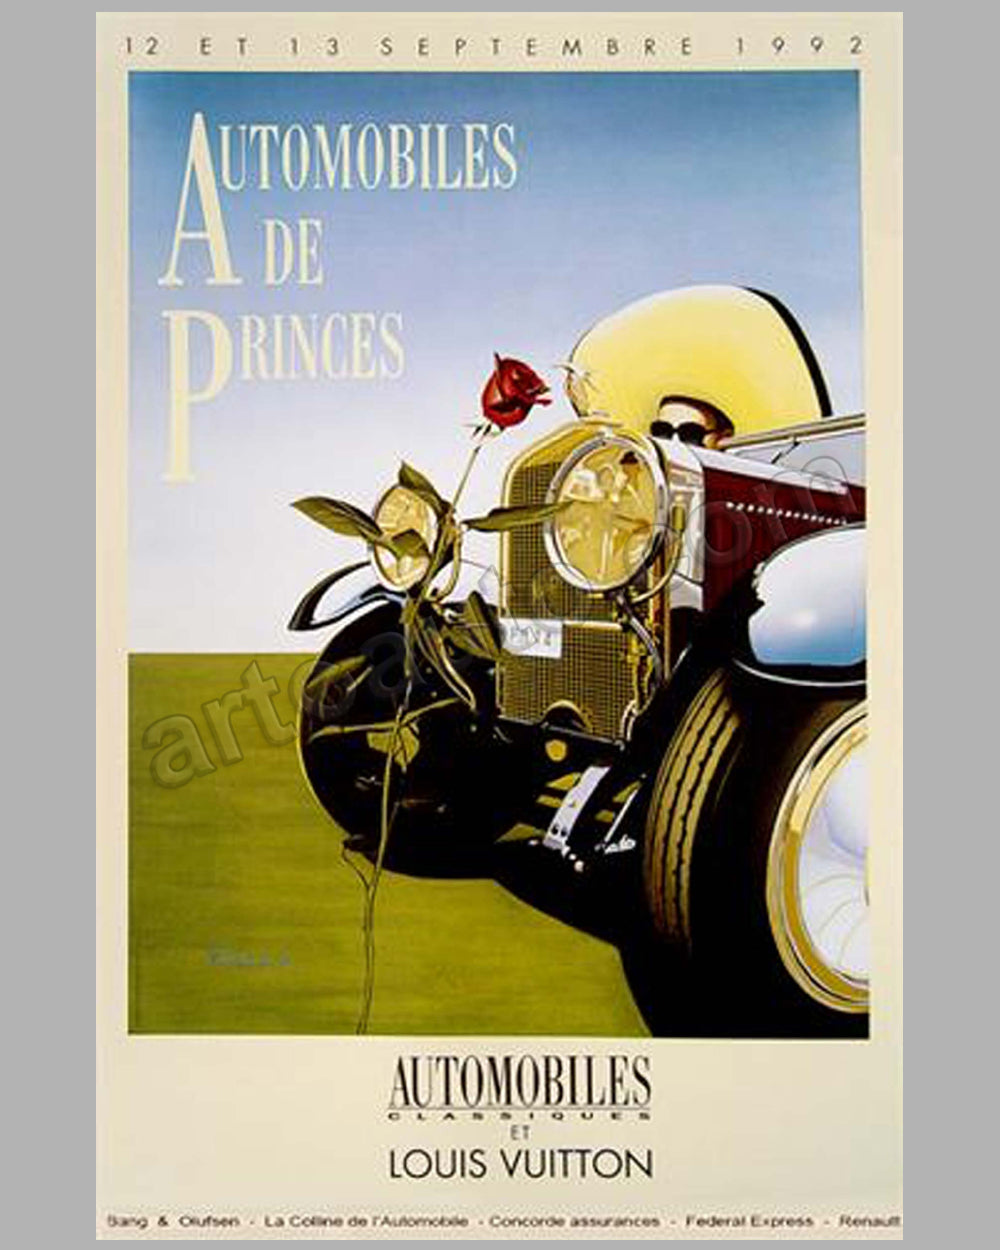 Automobiles de Princes large poster by Razzia